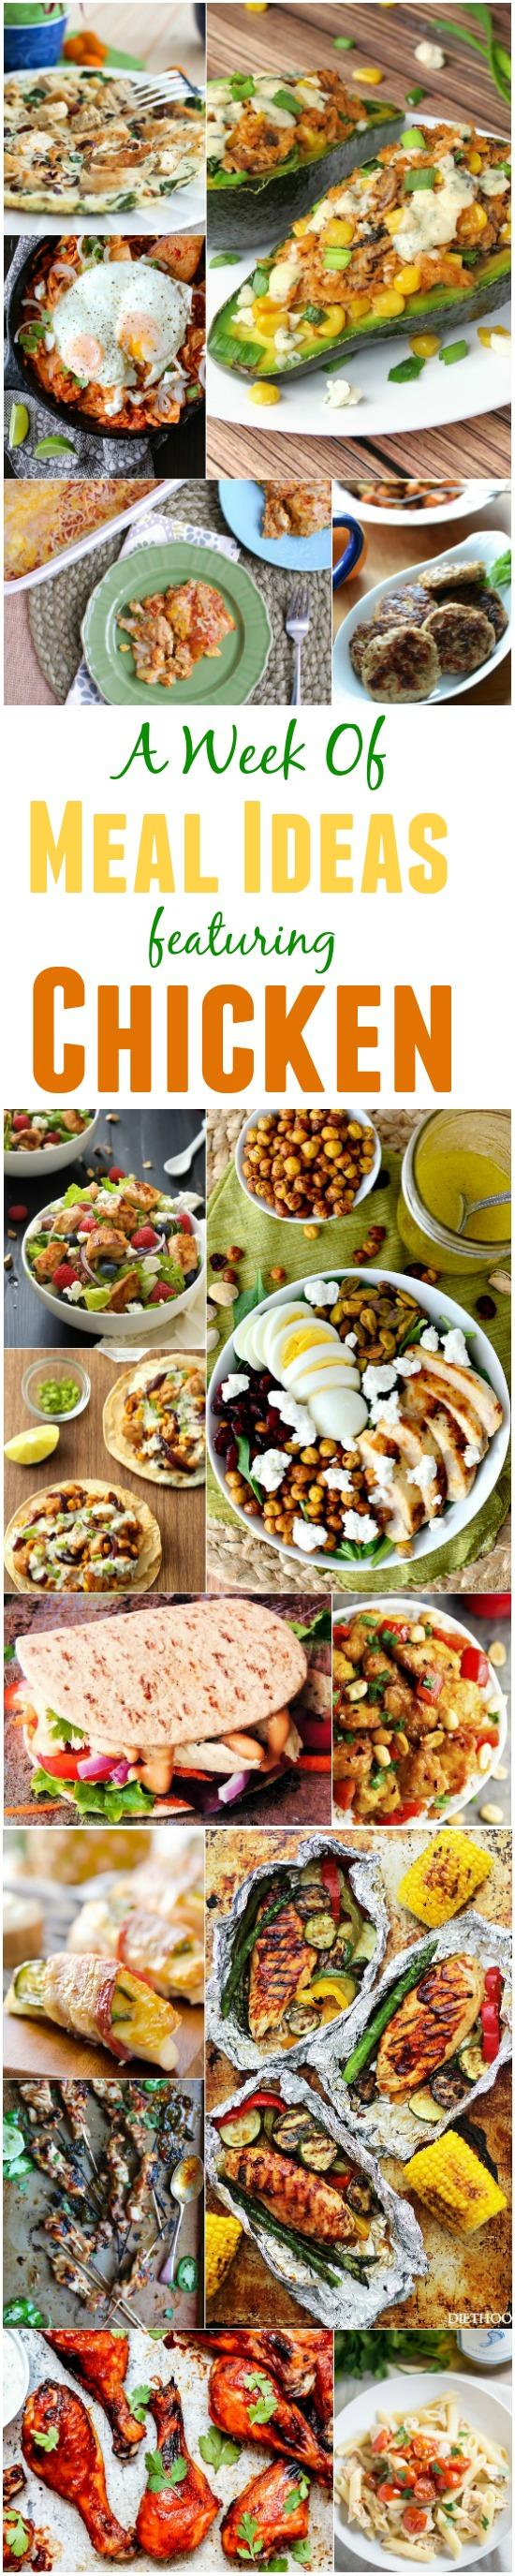 A Week of Meal Ideas Featuring Chicken